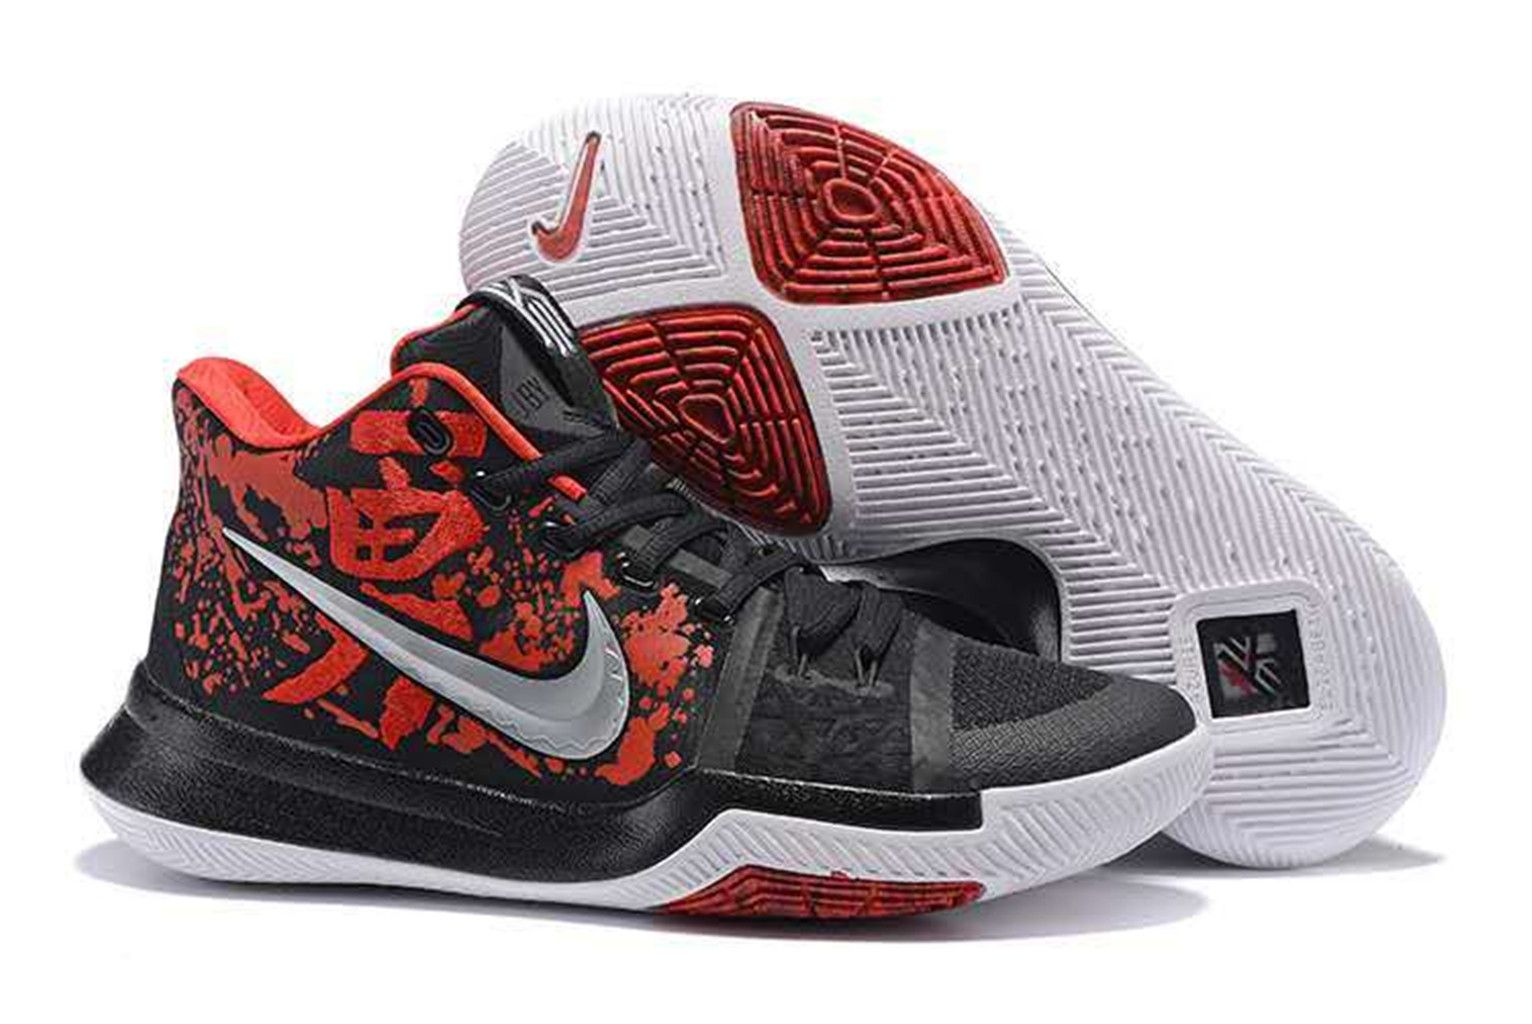 d7a70207b43 NBA Kyrie Irving 3 SAMURAI Basketball Shoes on www.airhuarache6.com ...